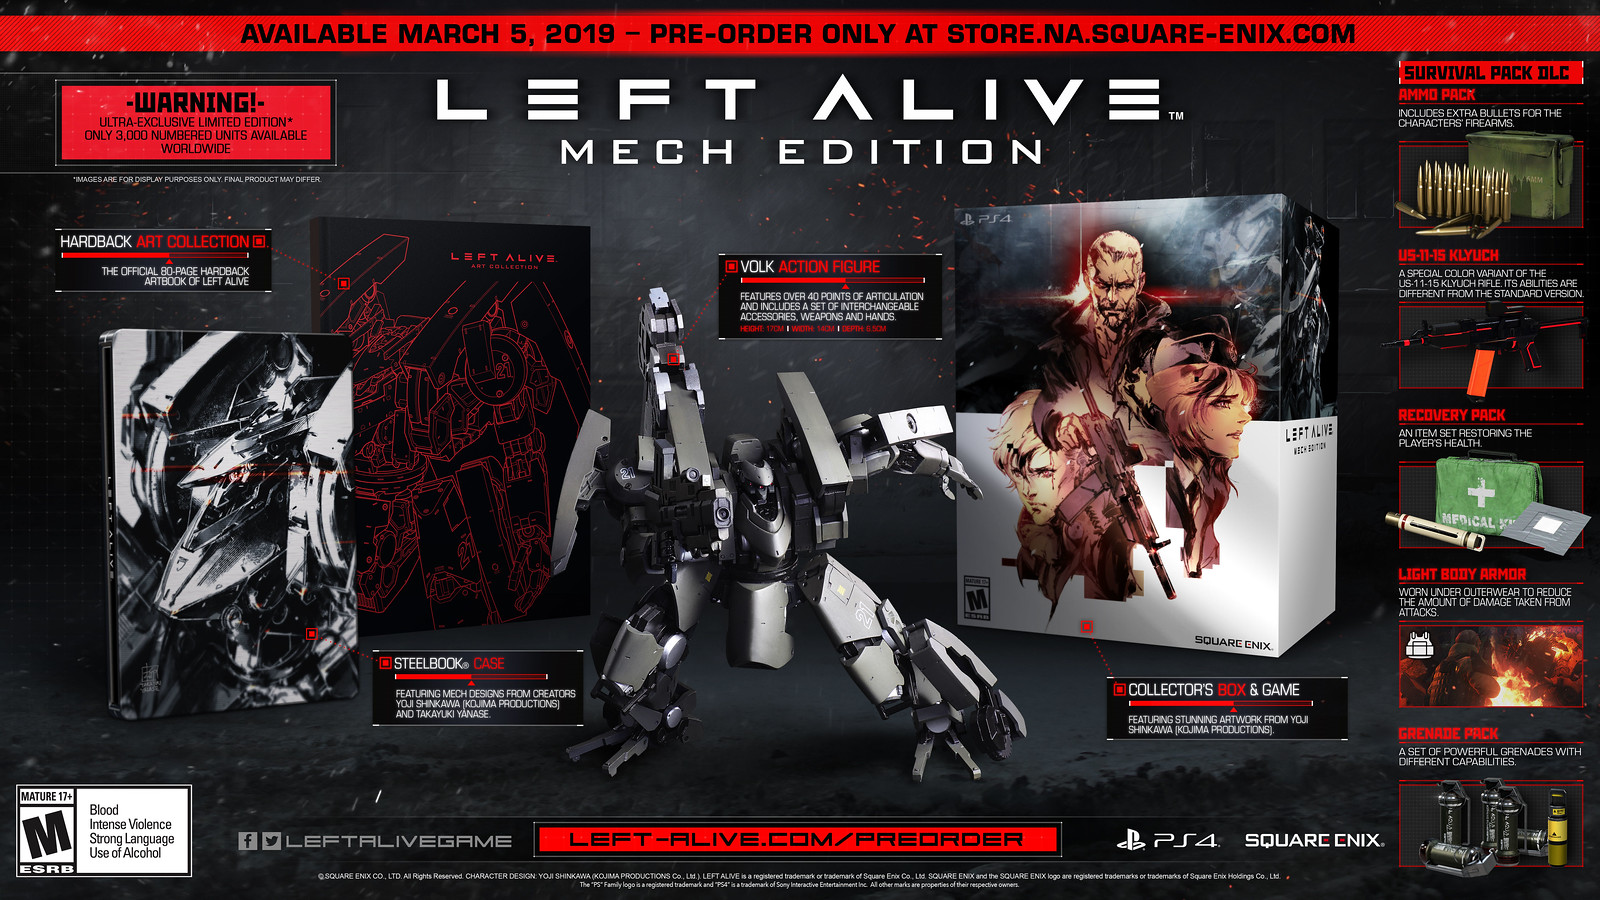 Left Alive: Mech Edition